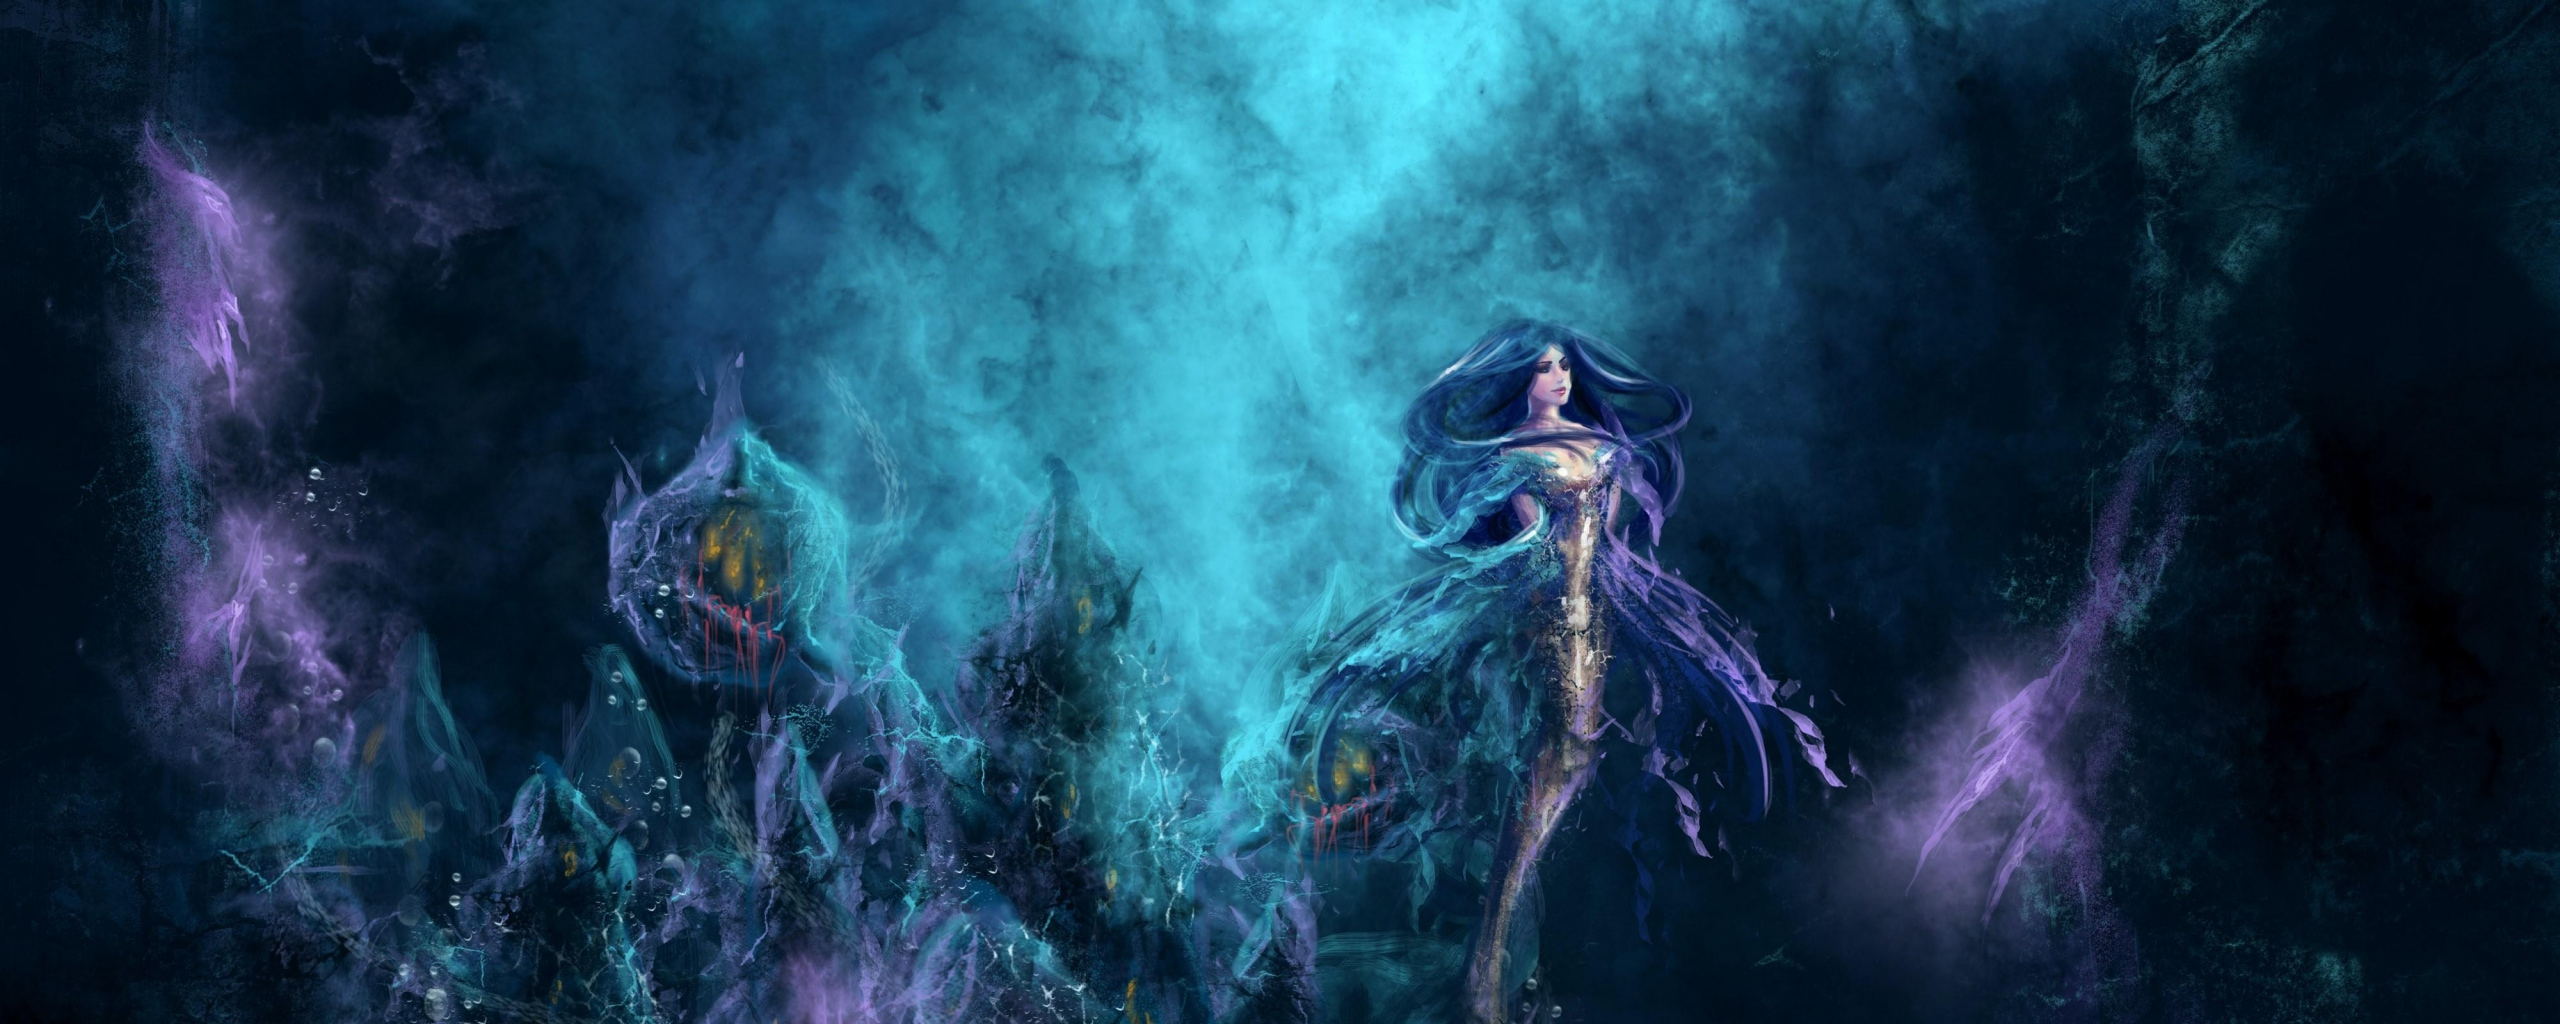 Download Wallpaper 2560x1024 mermaid underwater water depth Dual 2560x1024